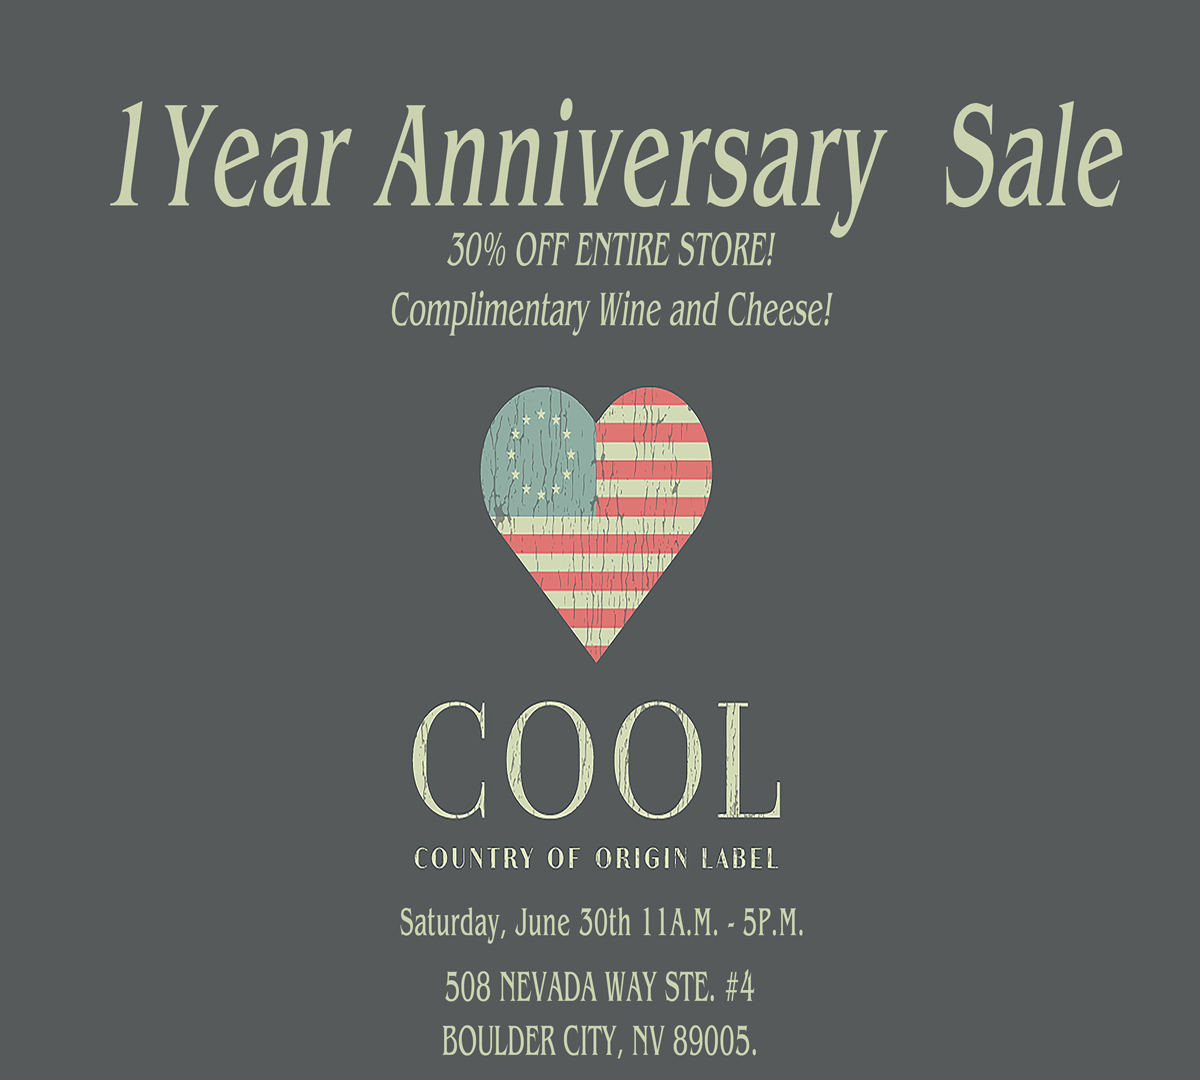 COOL Anniversary Sale Boulder City, NV